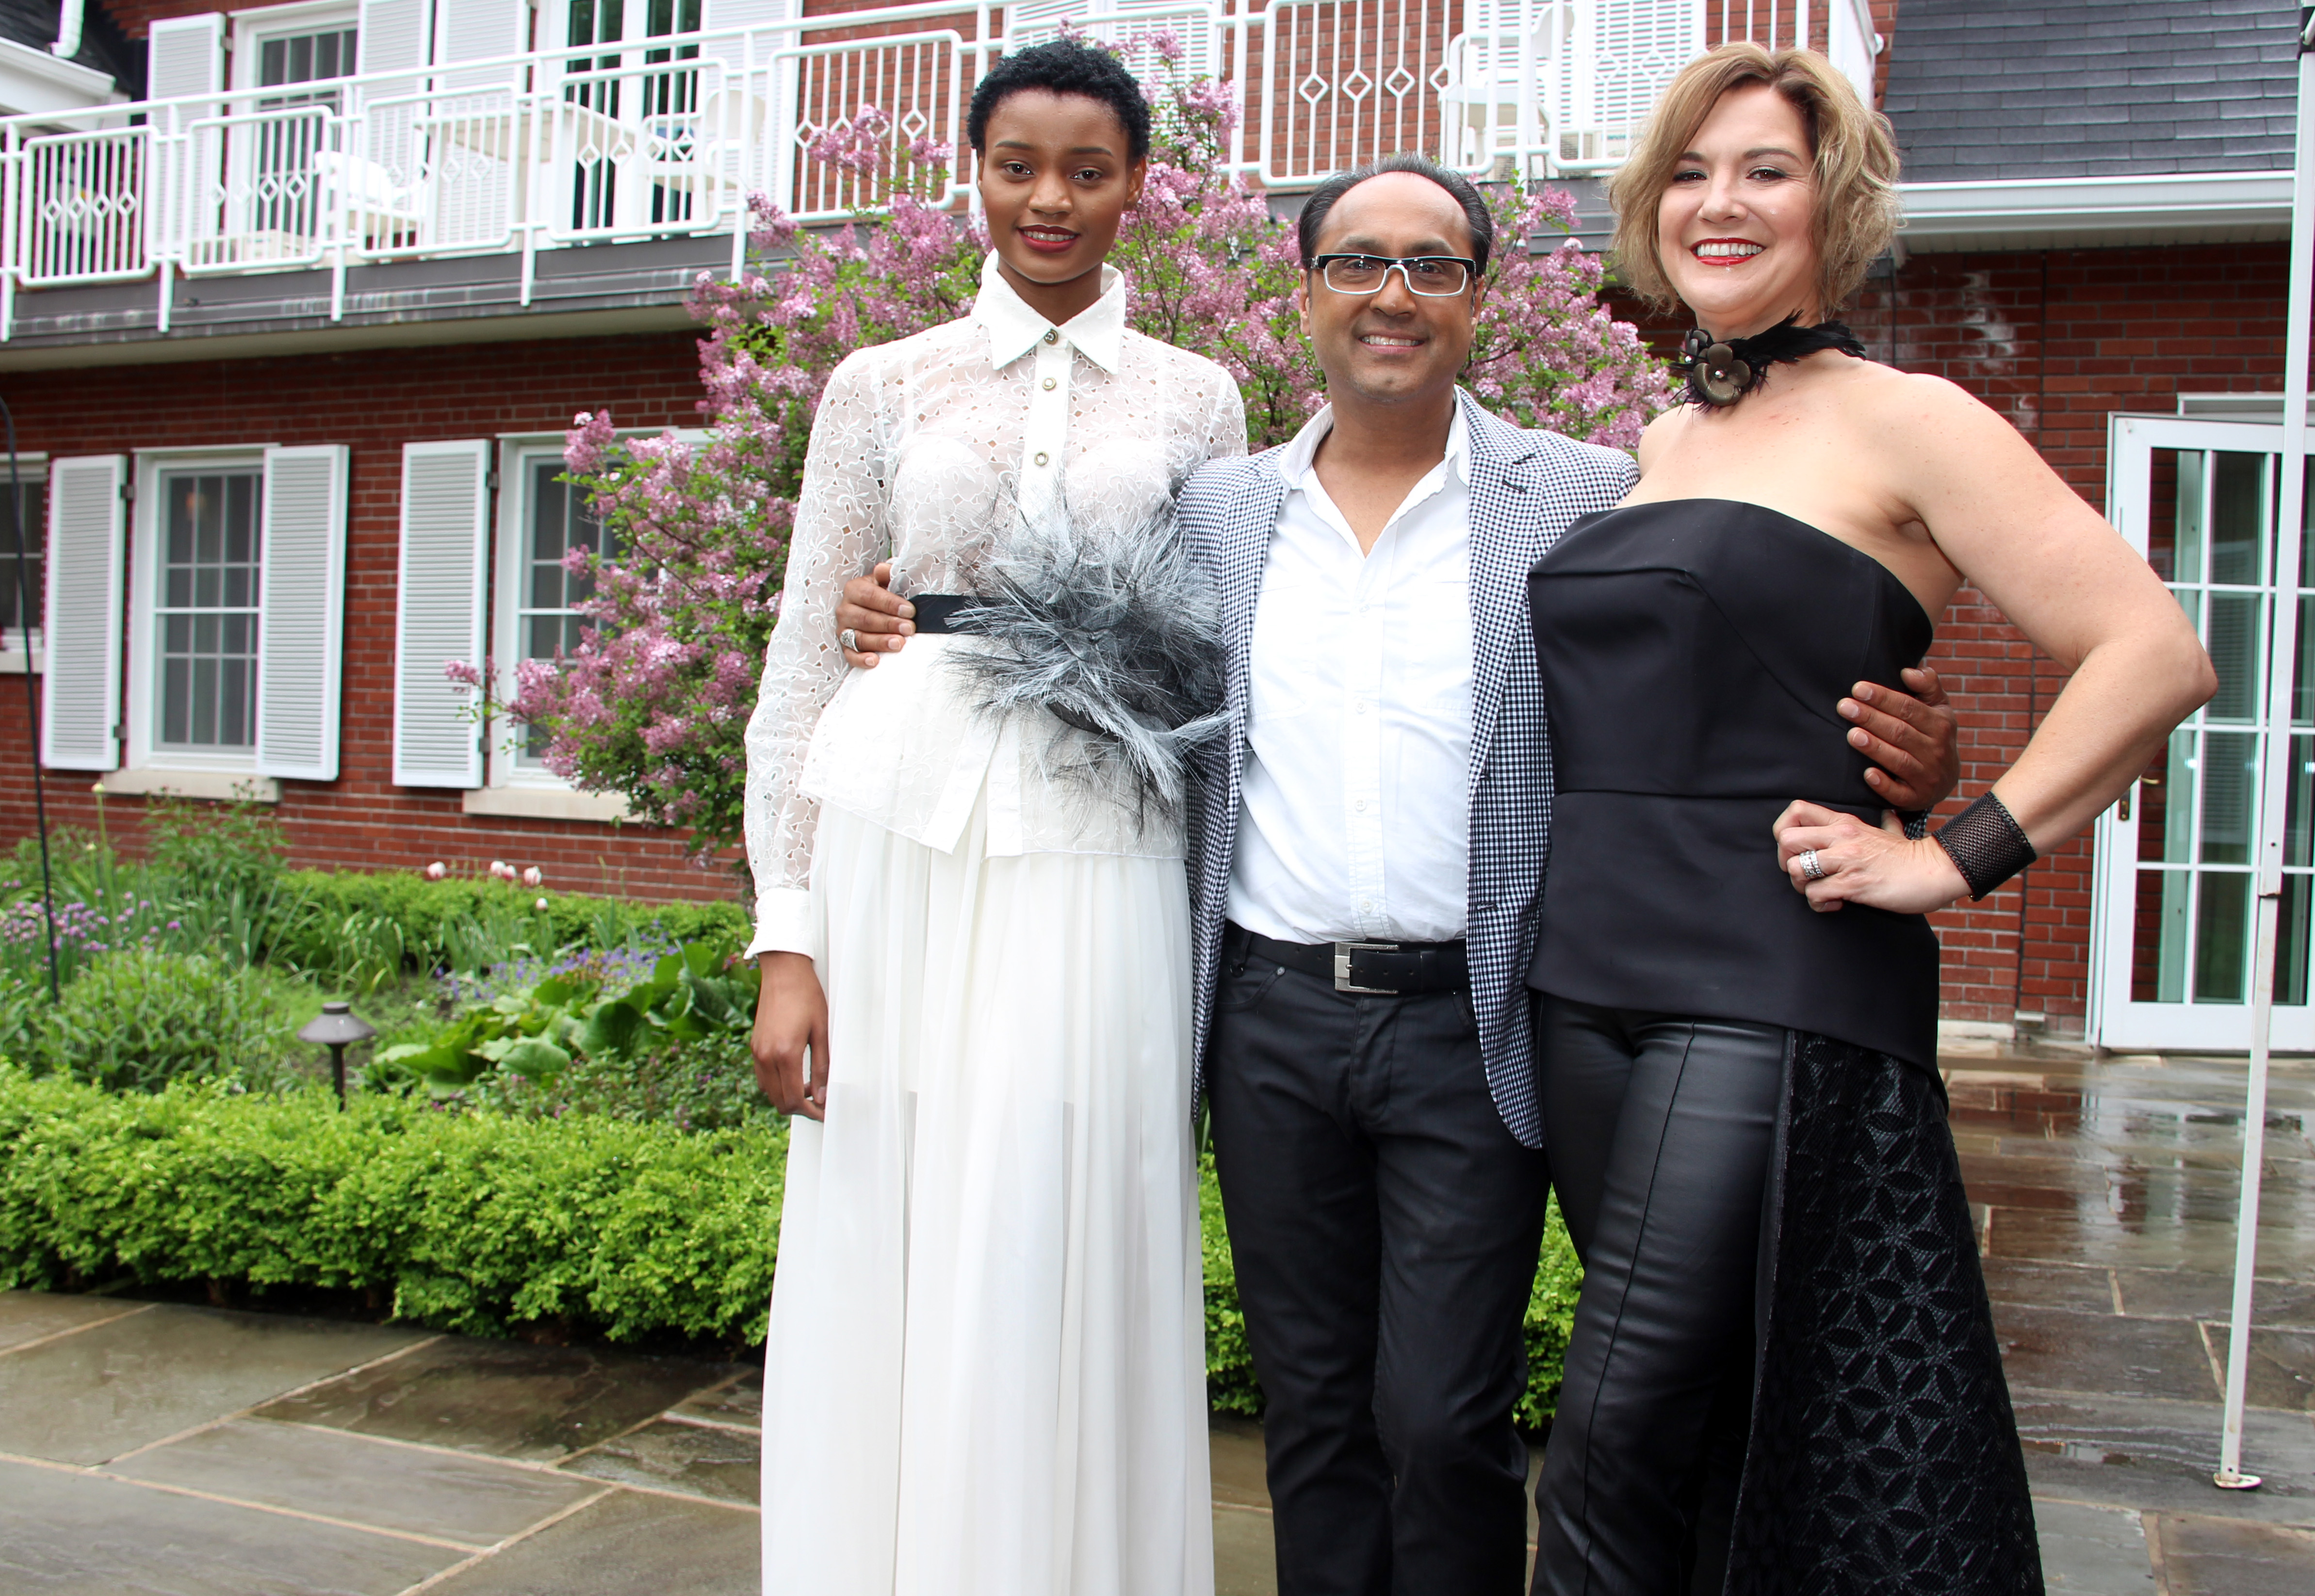 Cornerstone Fashion Show & Garden Party